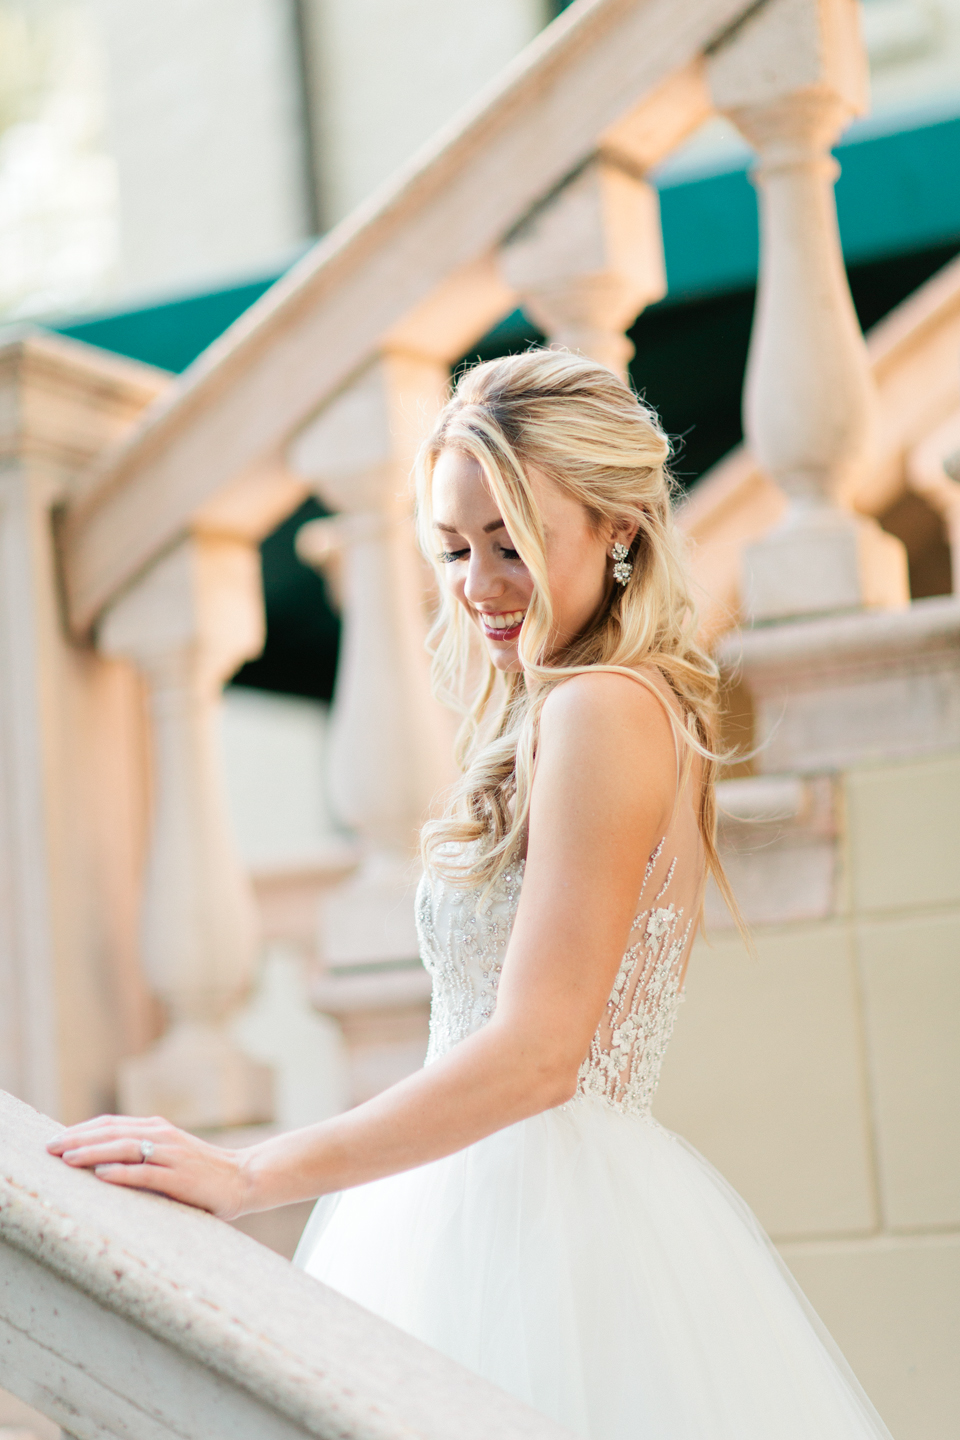 Image of a bride in a wedding Calvet Couture wedding gown at the Epping Forest Yacht Club in Jacksonville Florida.  She is on a staircase.